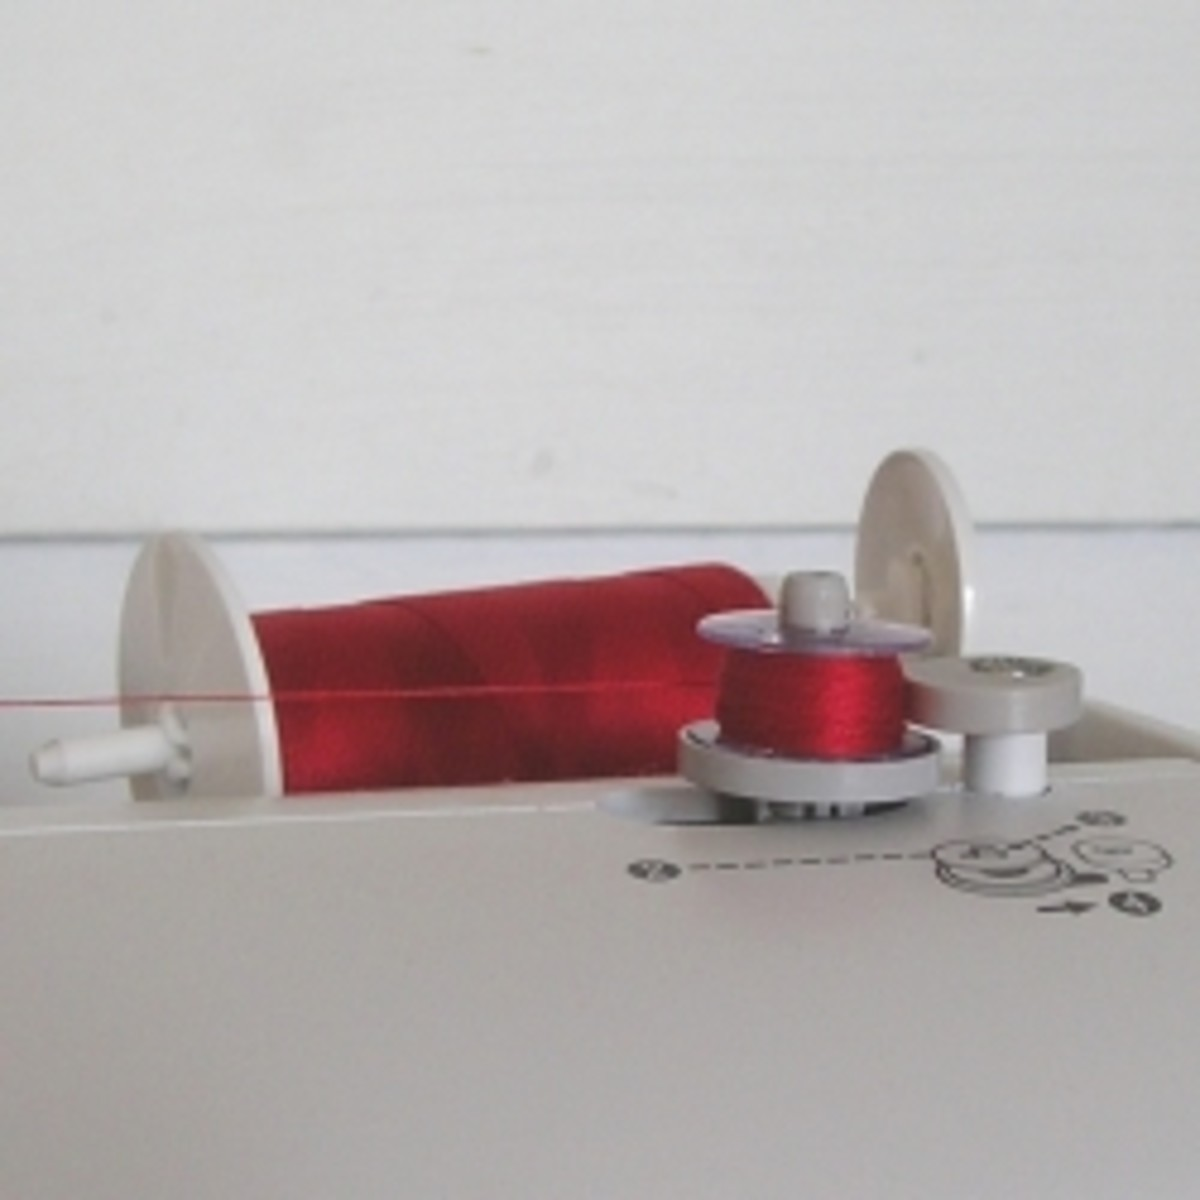 How to Wind a Sewing Machine Bobbin in Five Easy Steps